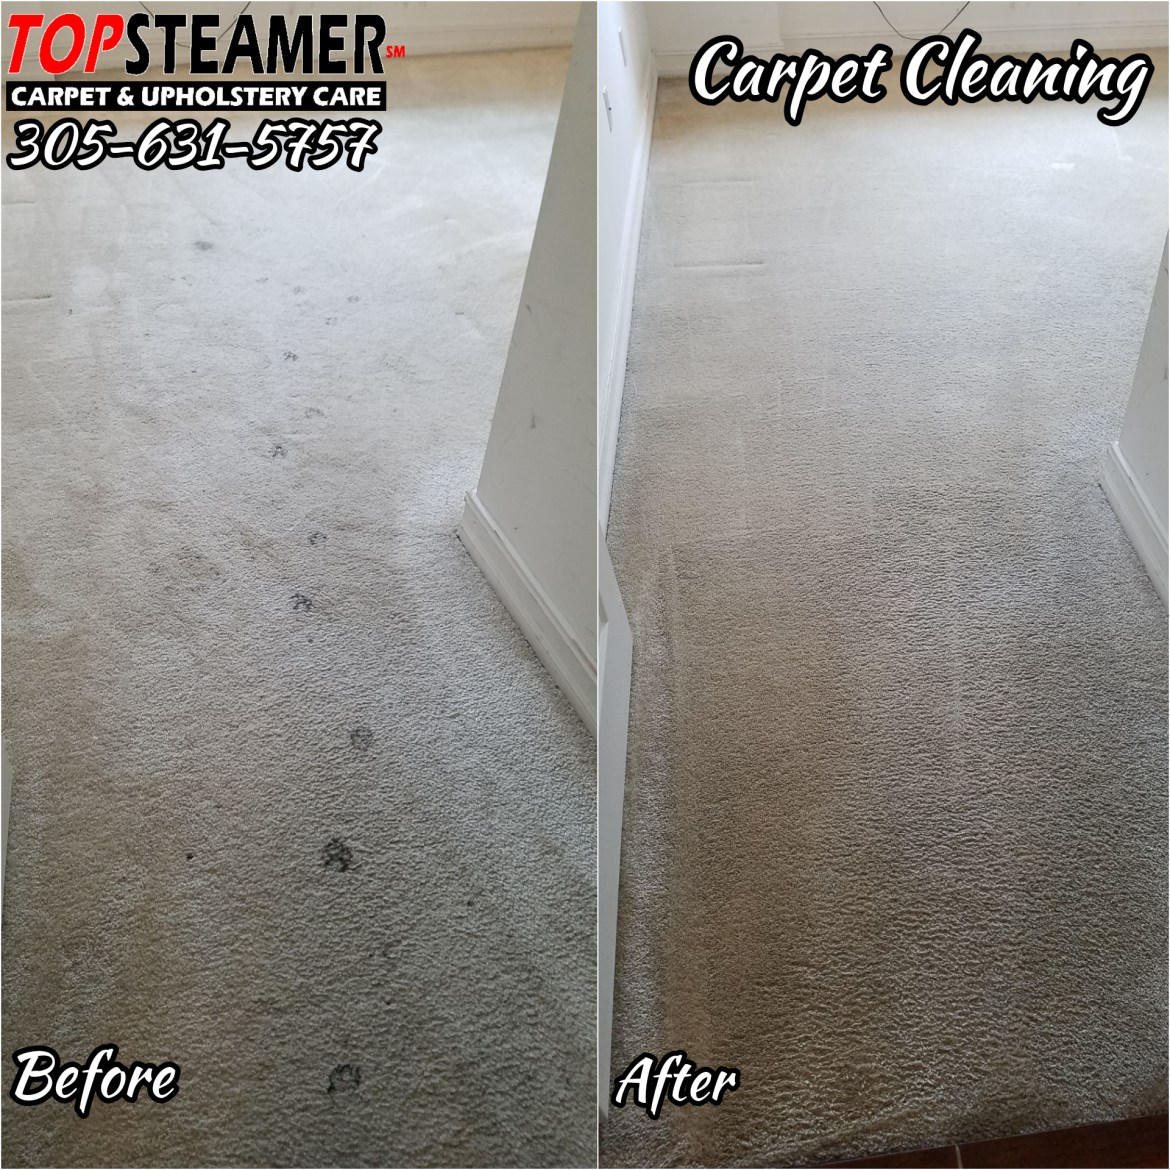 Carpet cleaner Miami